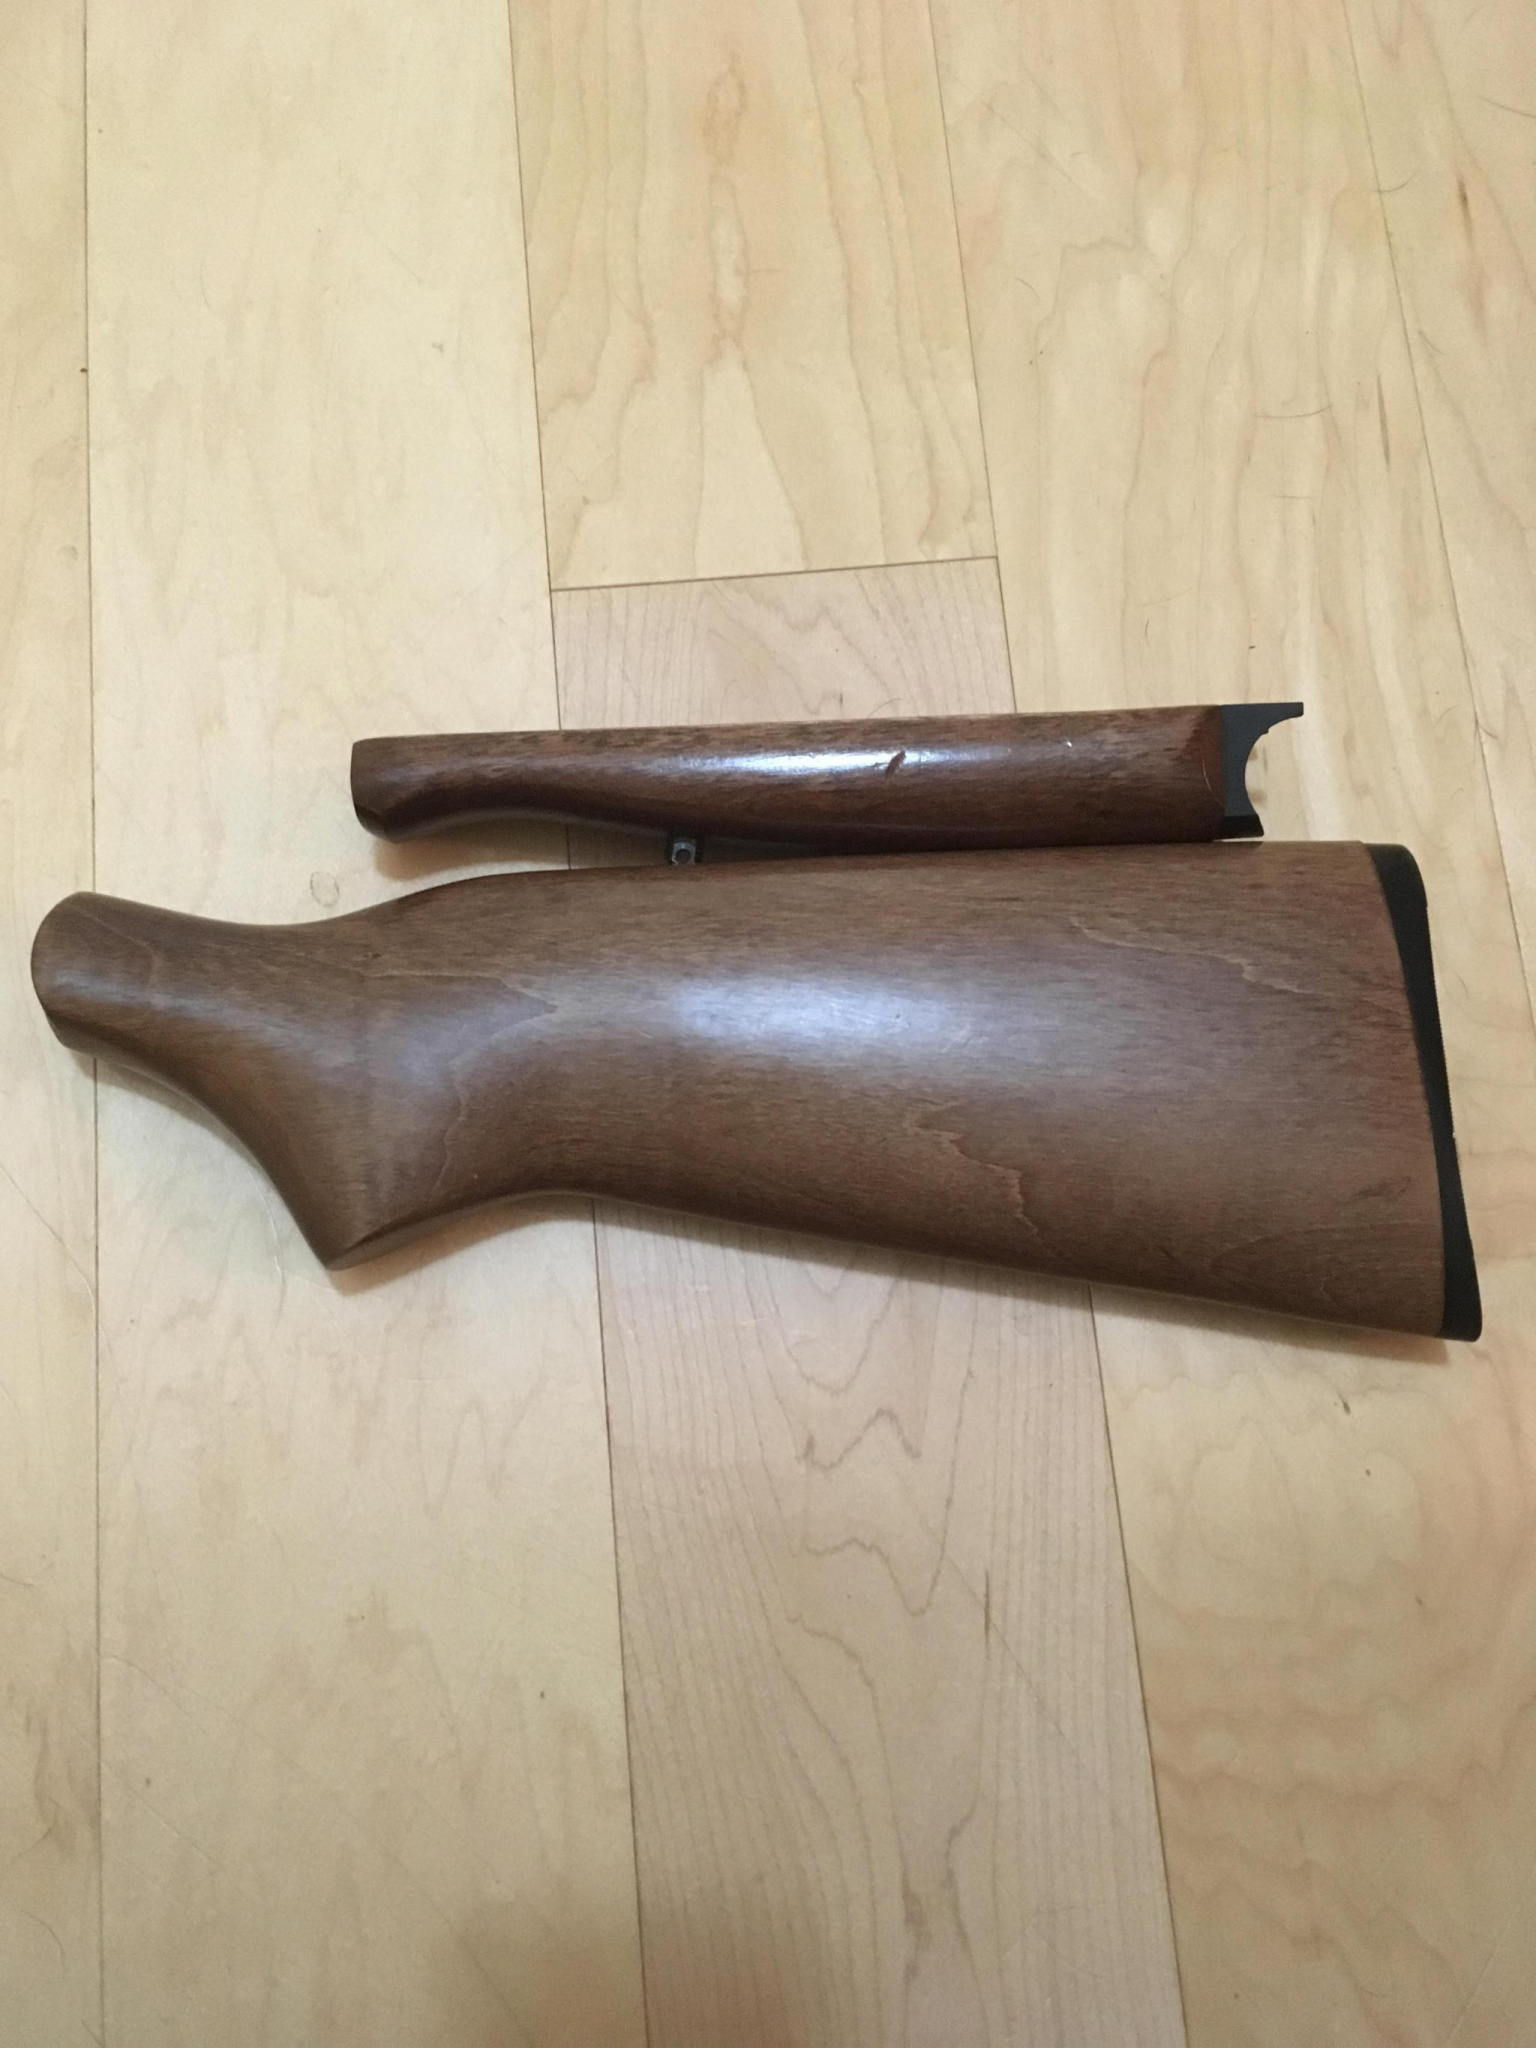 wood stock set for sale schnabel forend spf graybeard outdoors